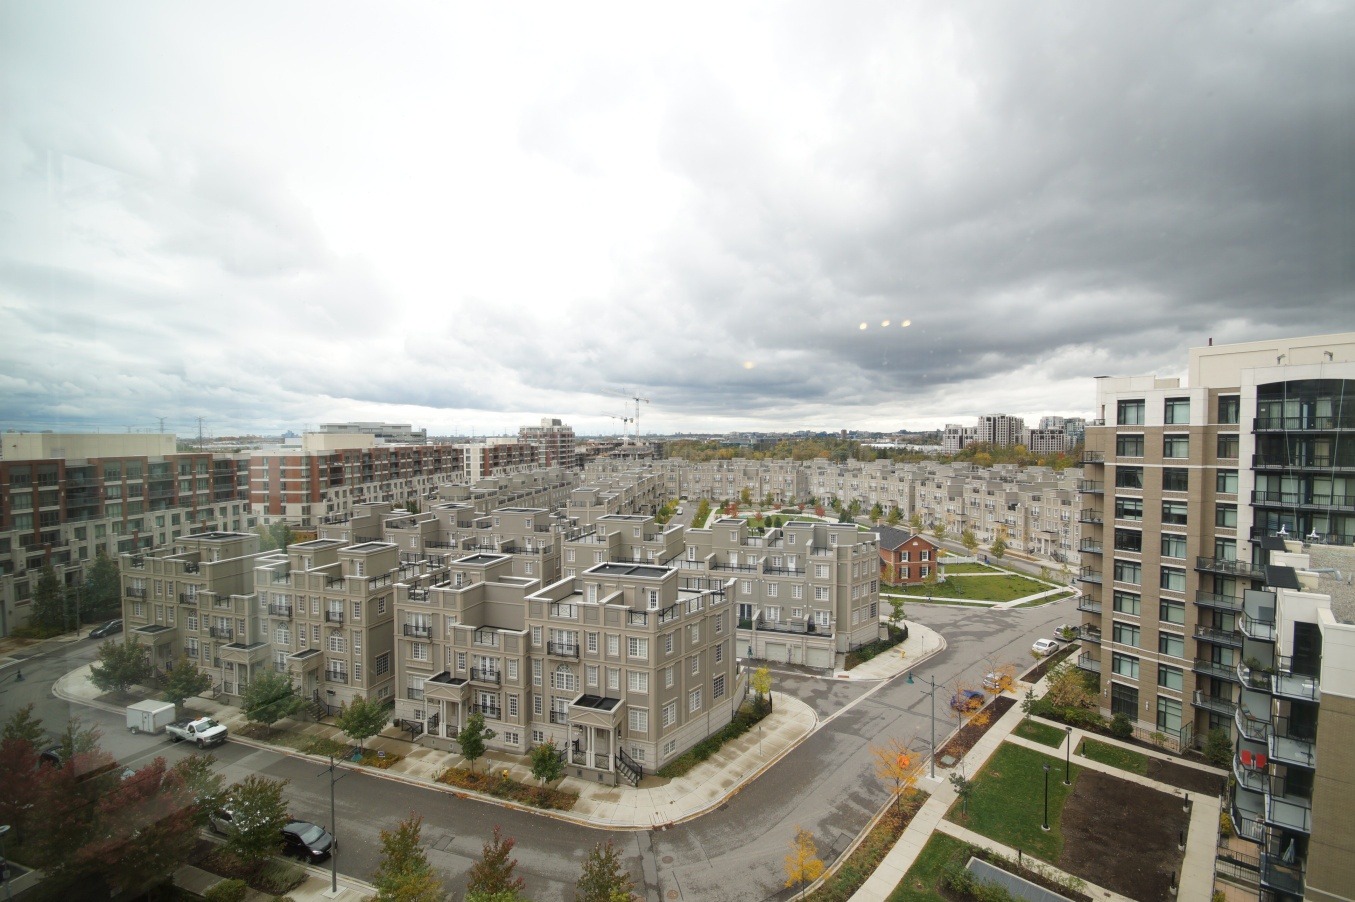 Condo for rent at 8130 Birchmount Rd, Markham, ON. with lawn.